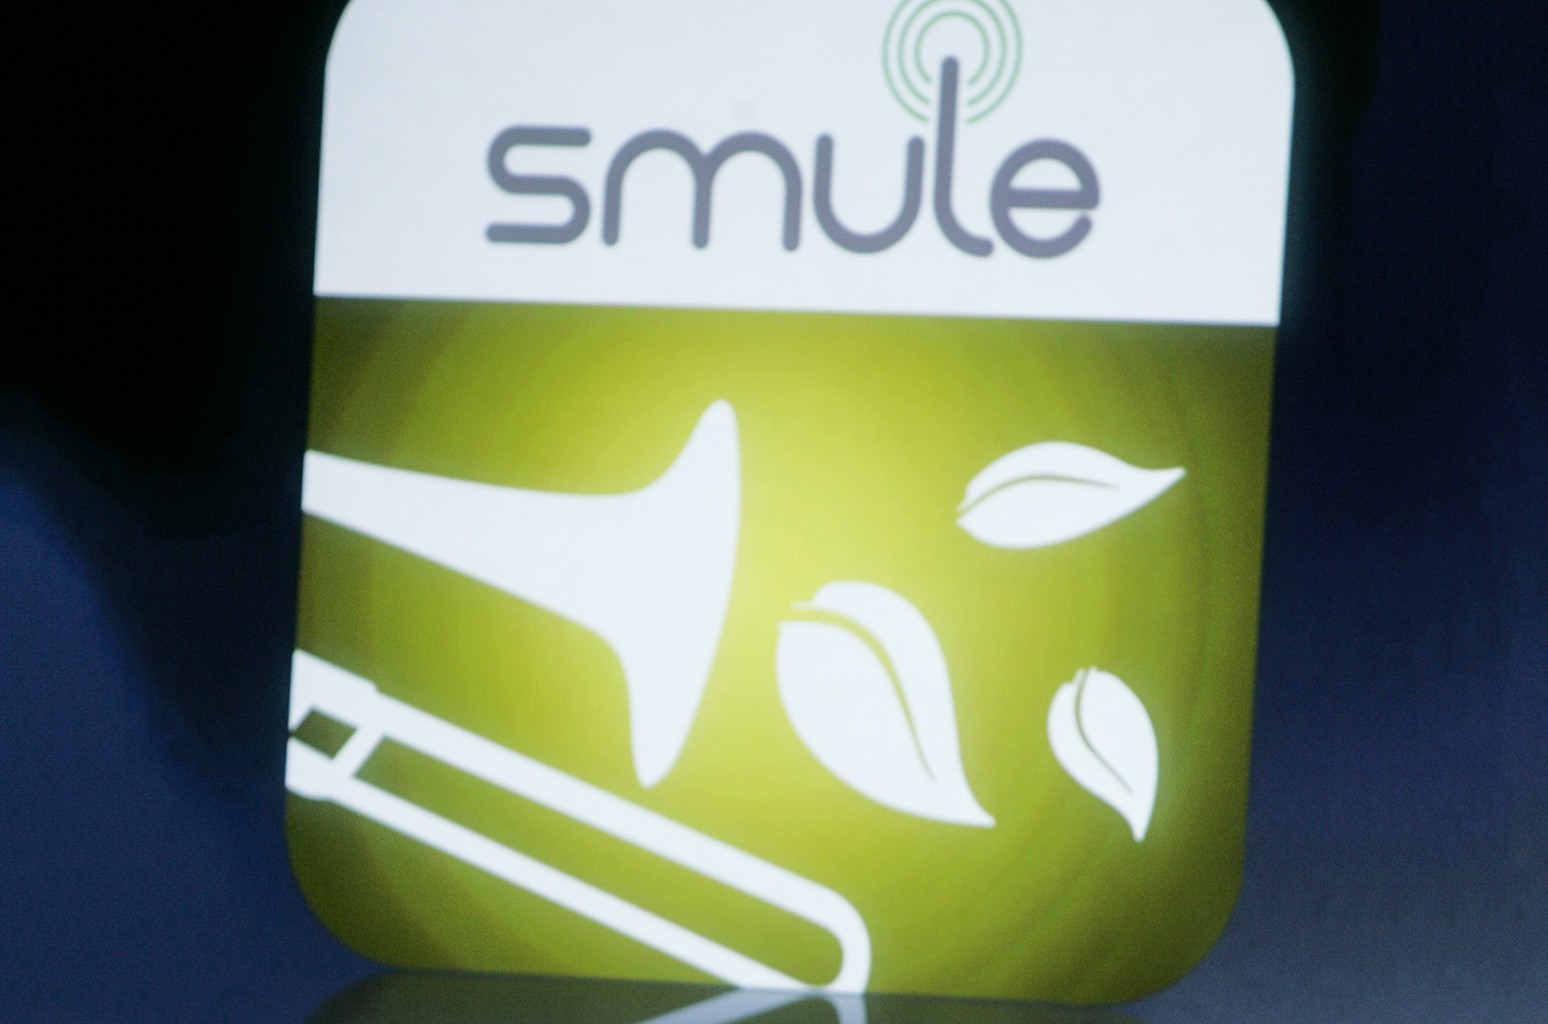 The Smule app logo shown on a screen at Apple headquarters in Cupertino, Calif.